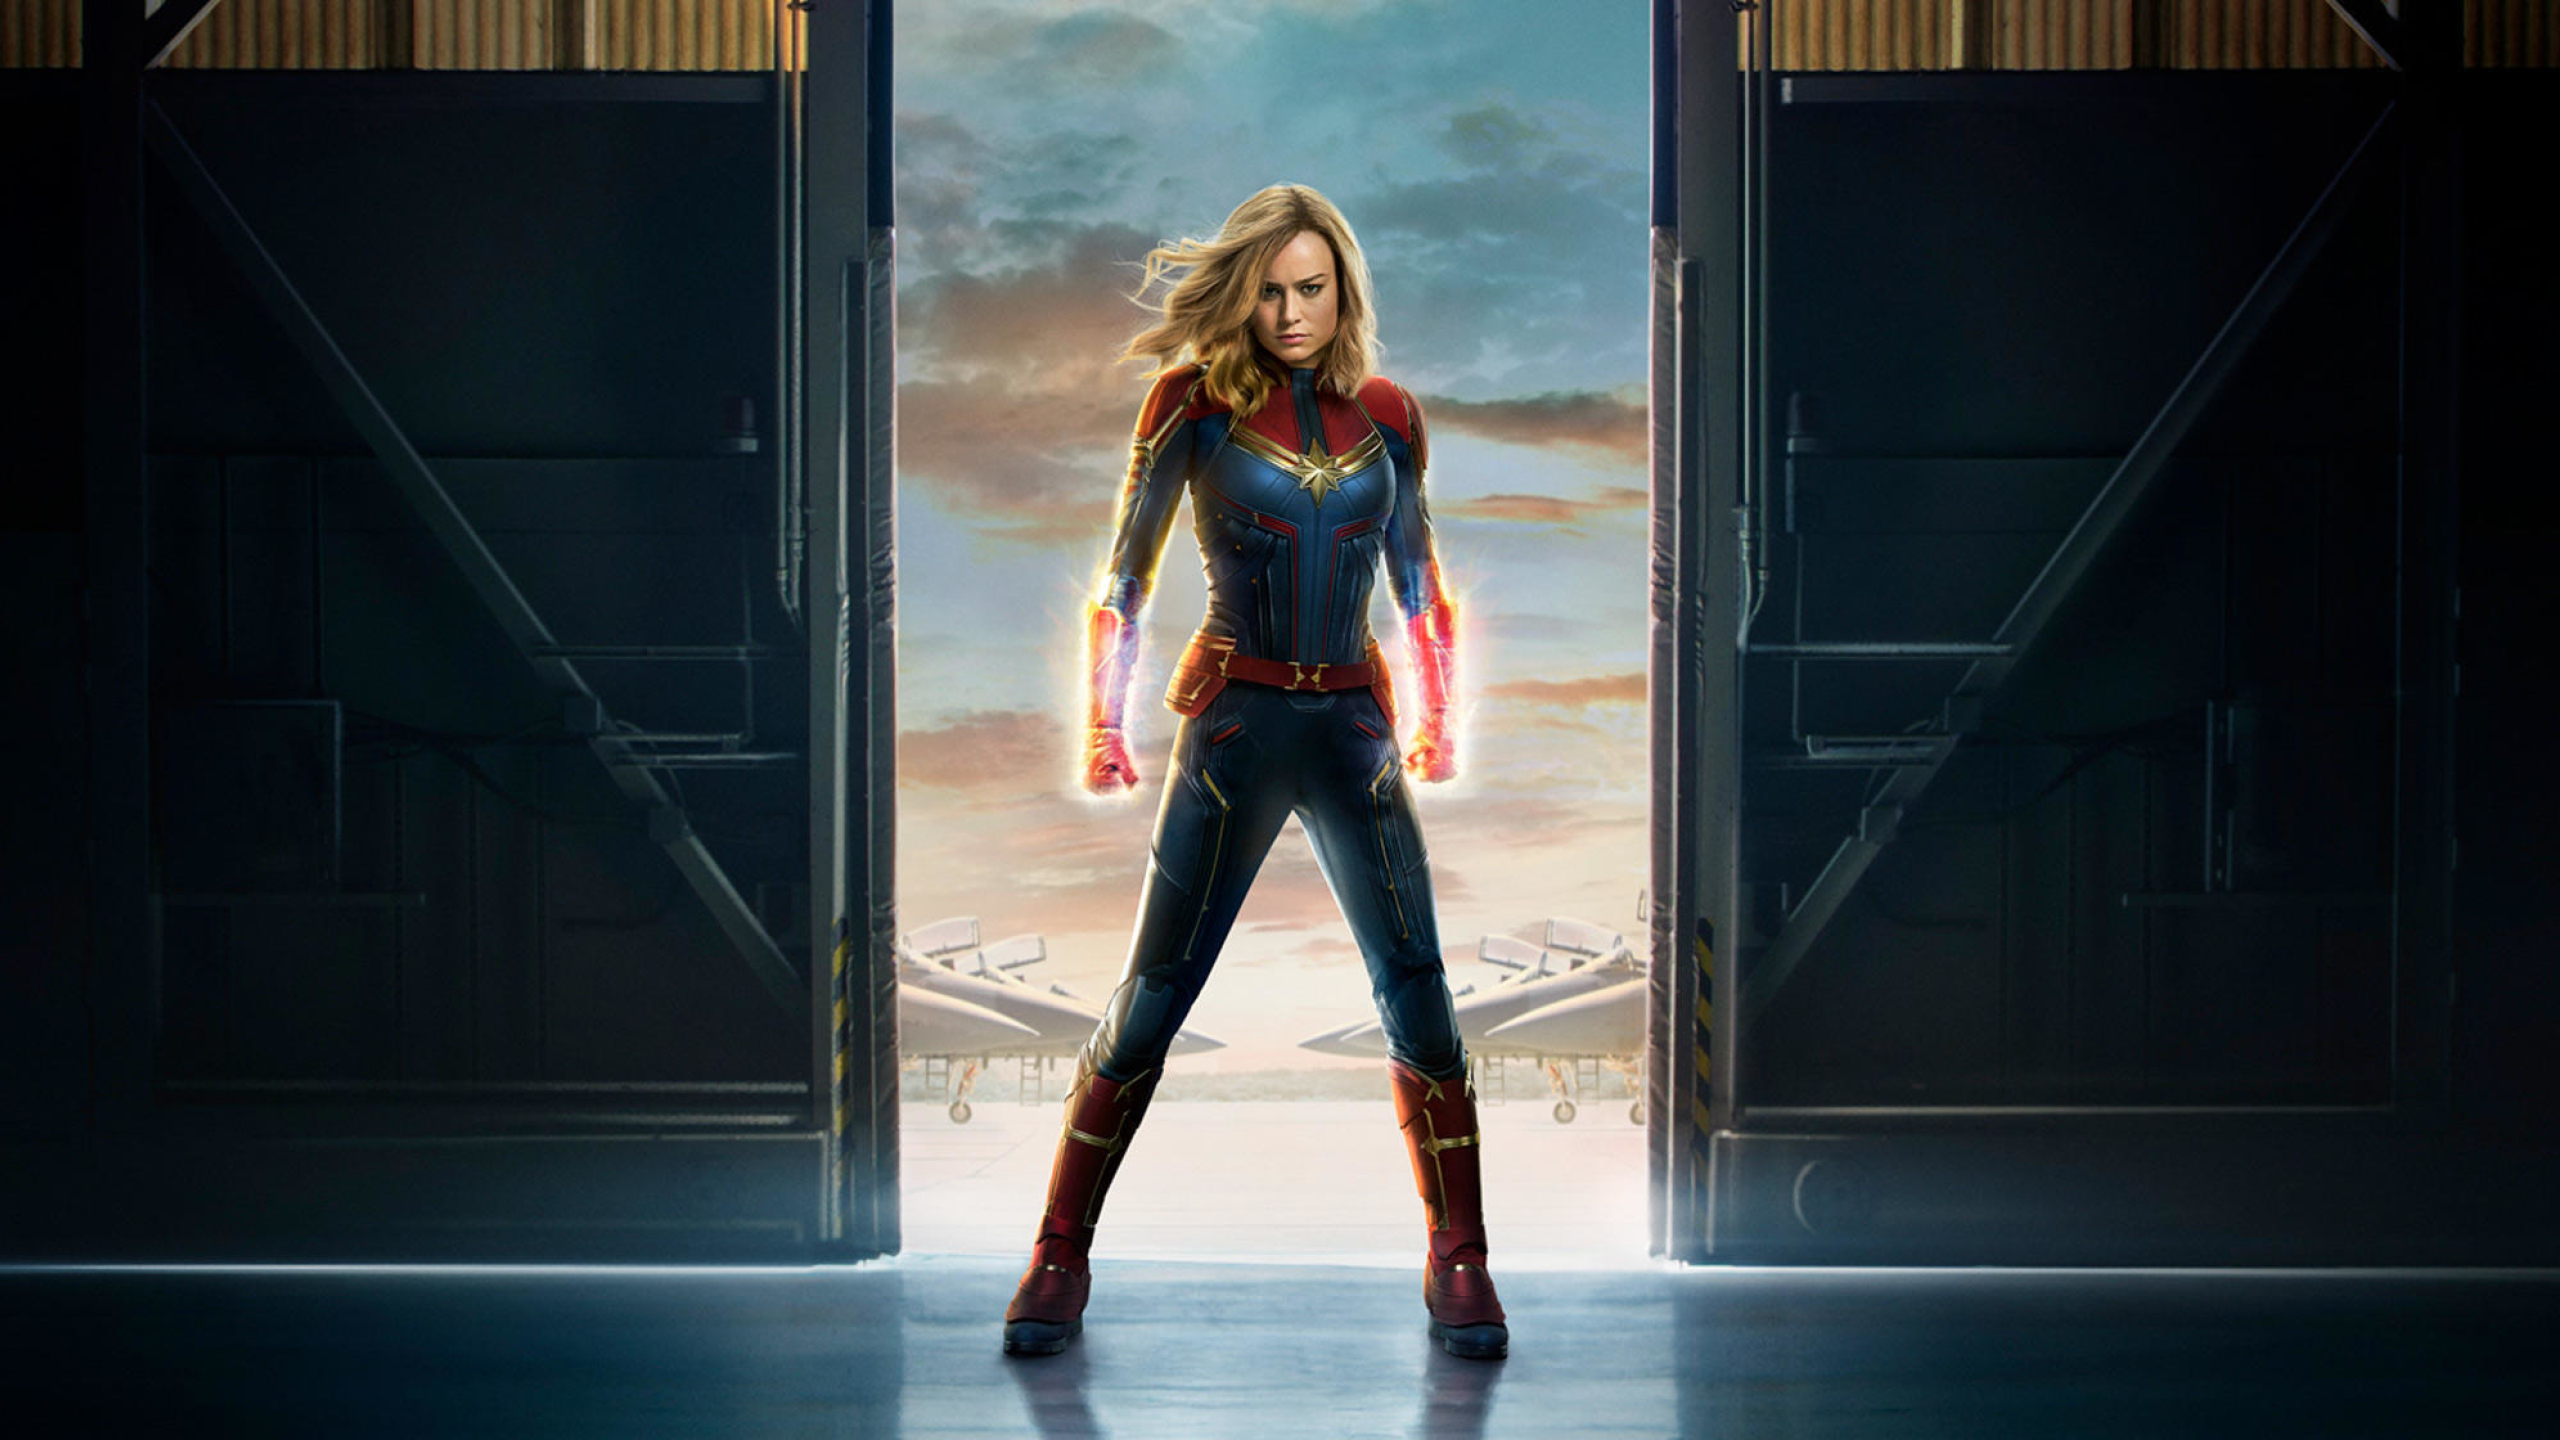 Movie Poster 2019: Captain Marvel 2019 Movie Official Poster, Full HD 2K